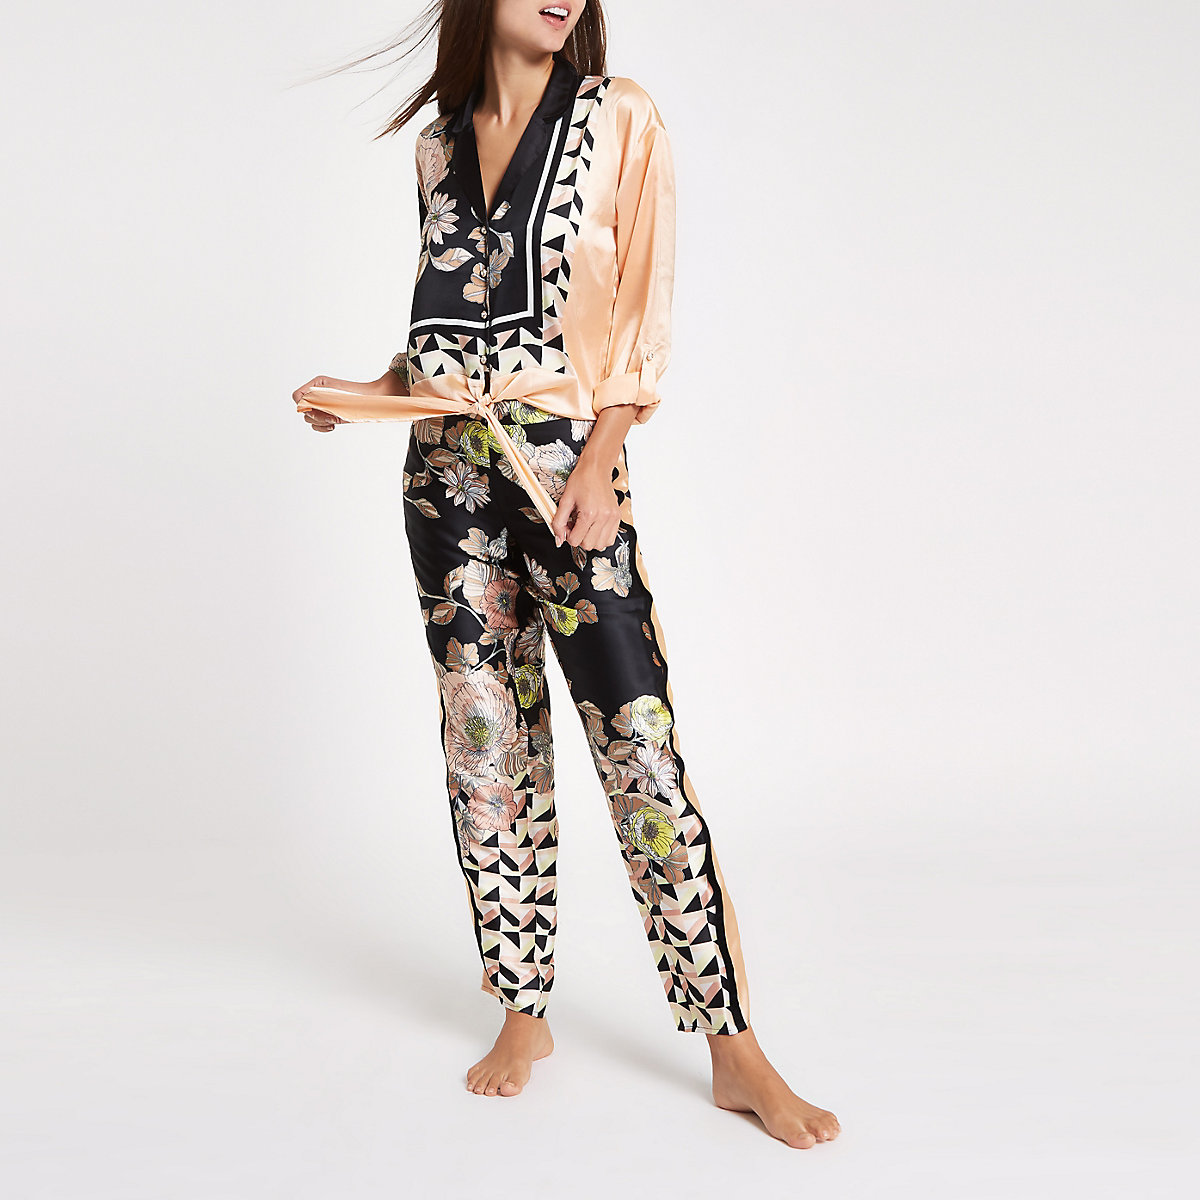 Black satin floral print pyjama trousers